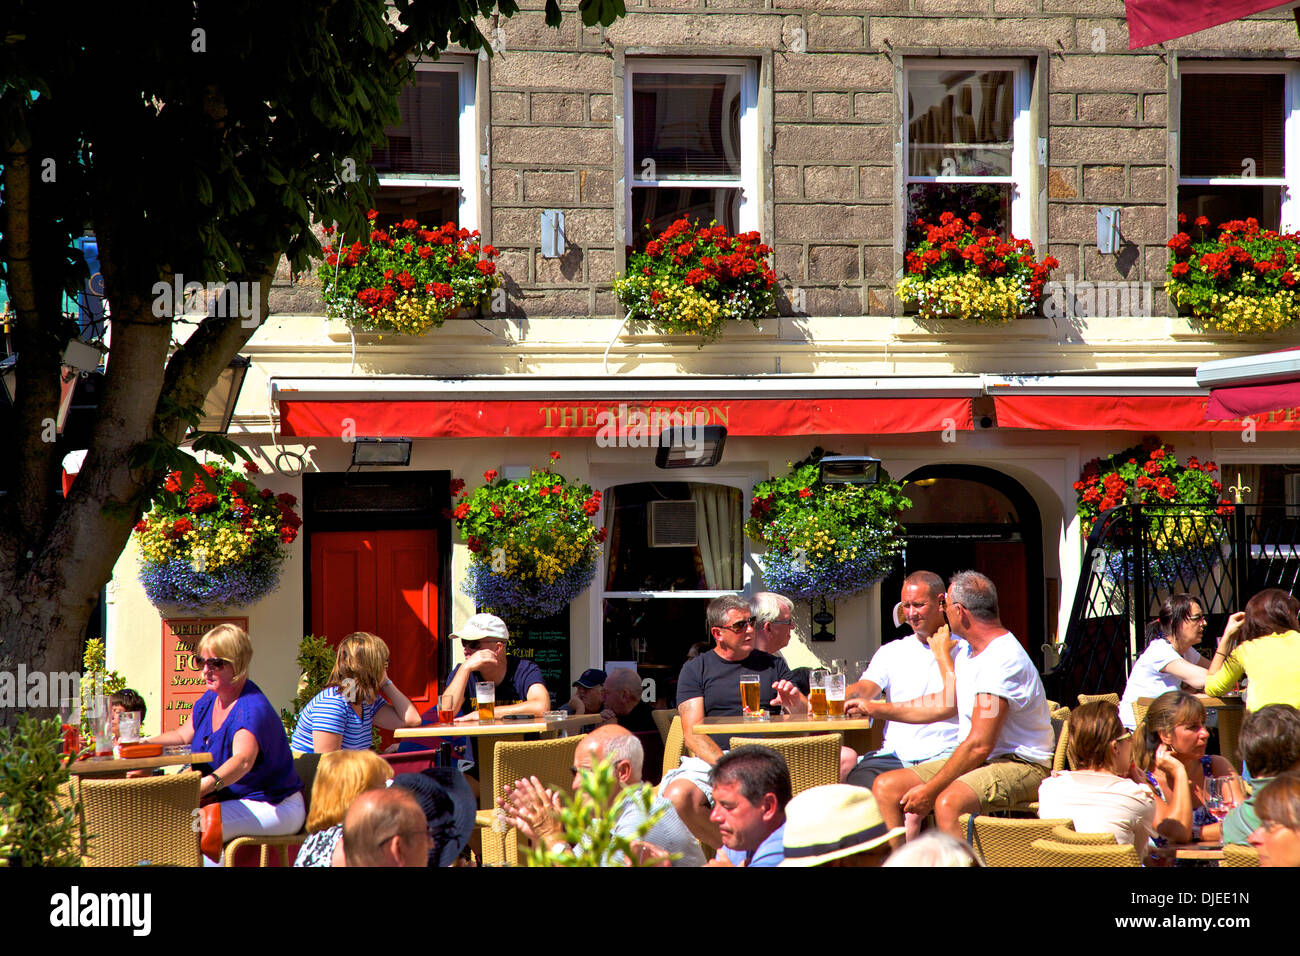 People Drinking at Outside Bar, Royal Square, St. Helier, Jersey, Channel Islands - Stock Image